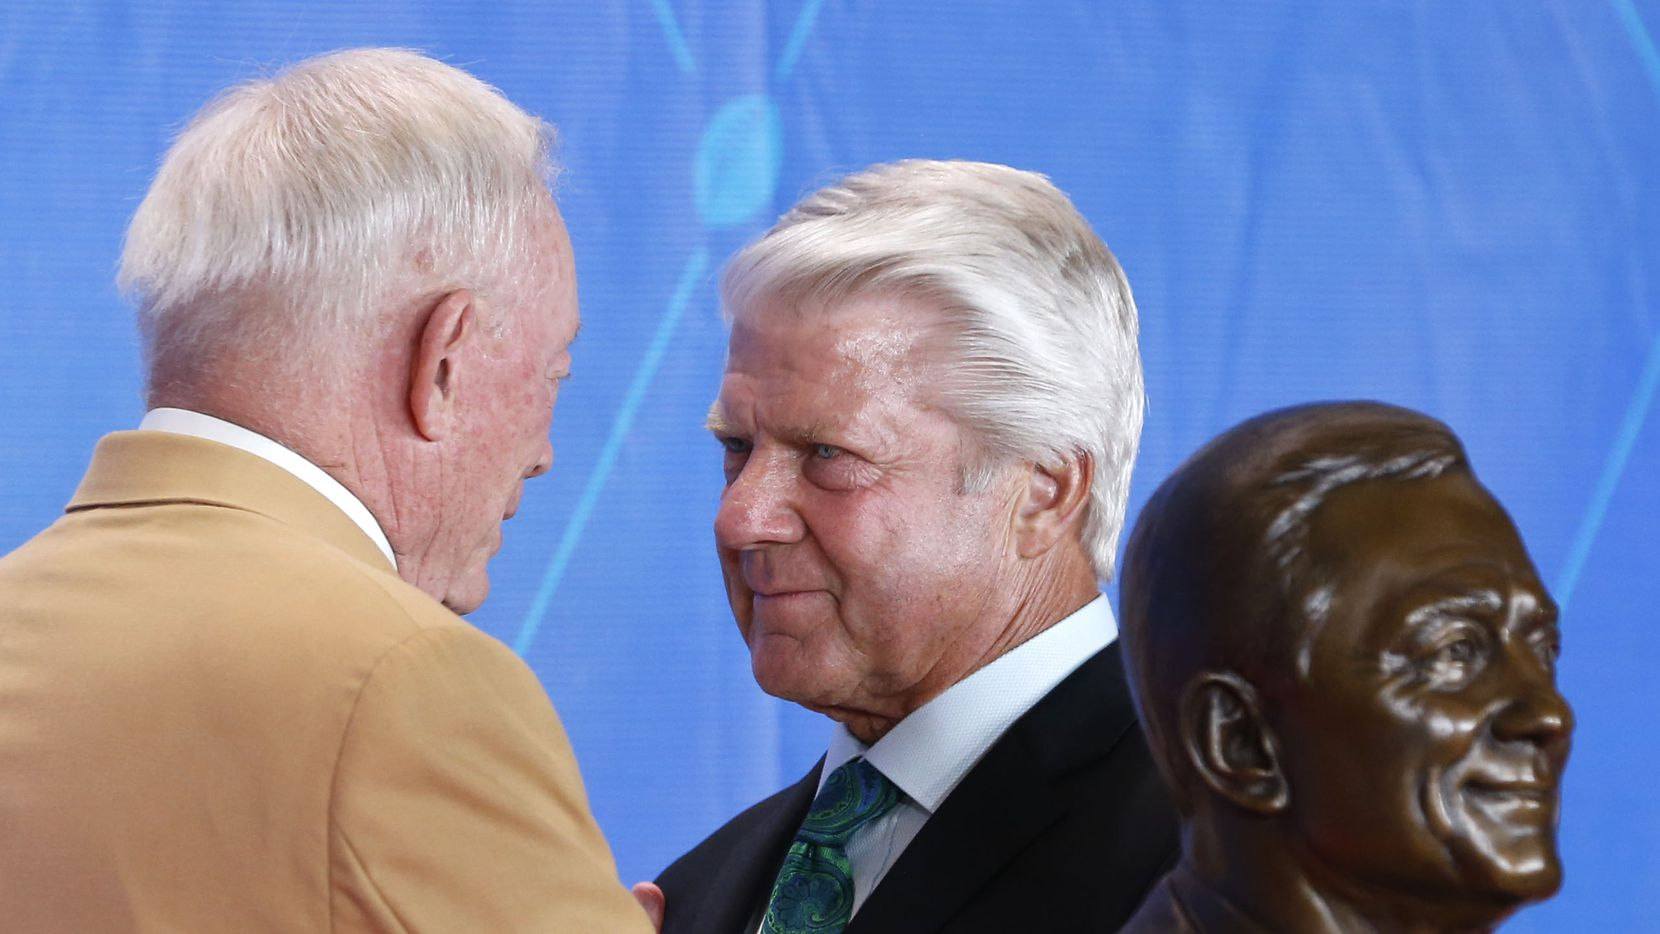 Former Dallas Cowboys head coach Jimmy Johnson listens as 2017 Pro Football Hall of Fame inductee and Dallas Cowboys owner and general manager Jerry Jones talks to him at the 2017 Pro Football Hall of Fame Enshrinement Ceremony at Tom Benson Stadium in Canton, Ohio on Saturday, August 6, 2017.